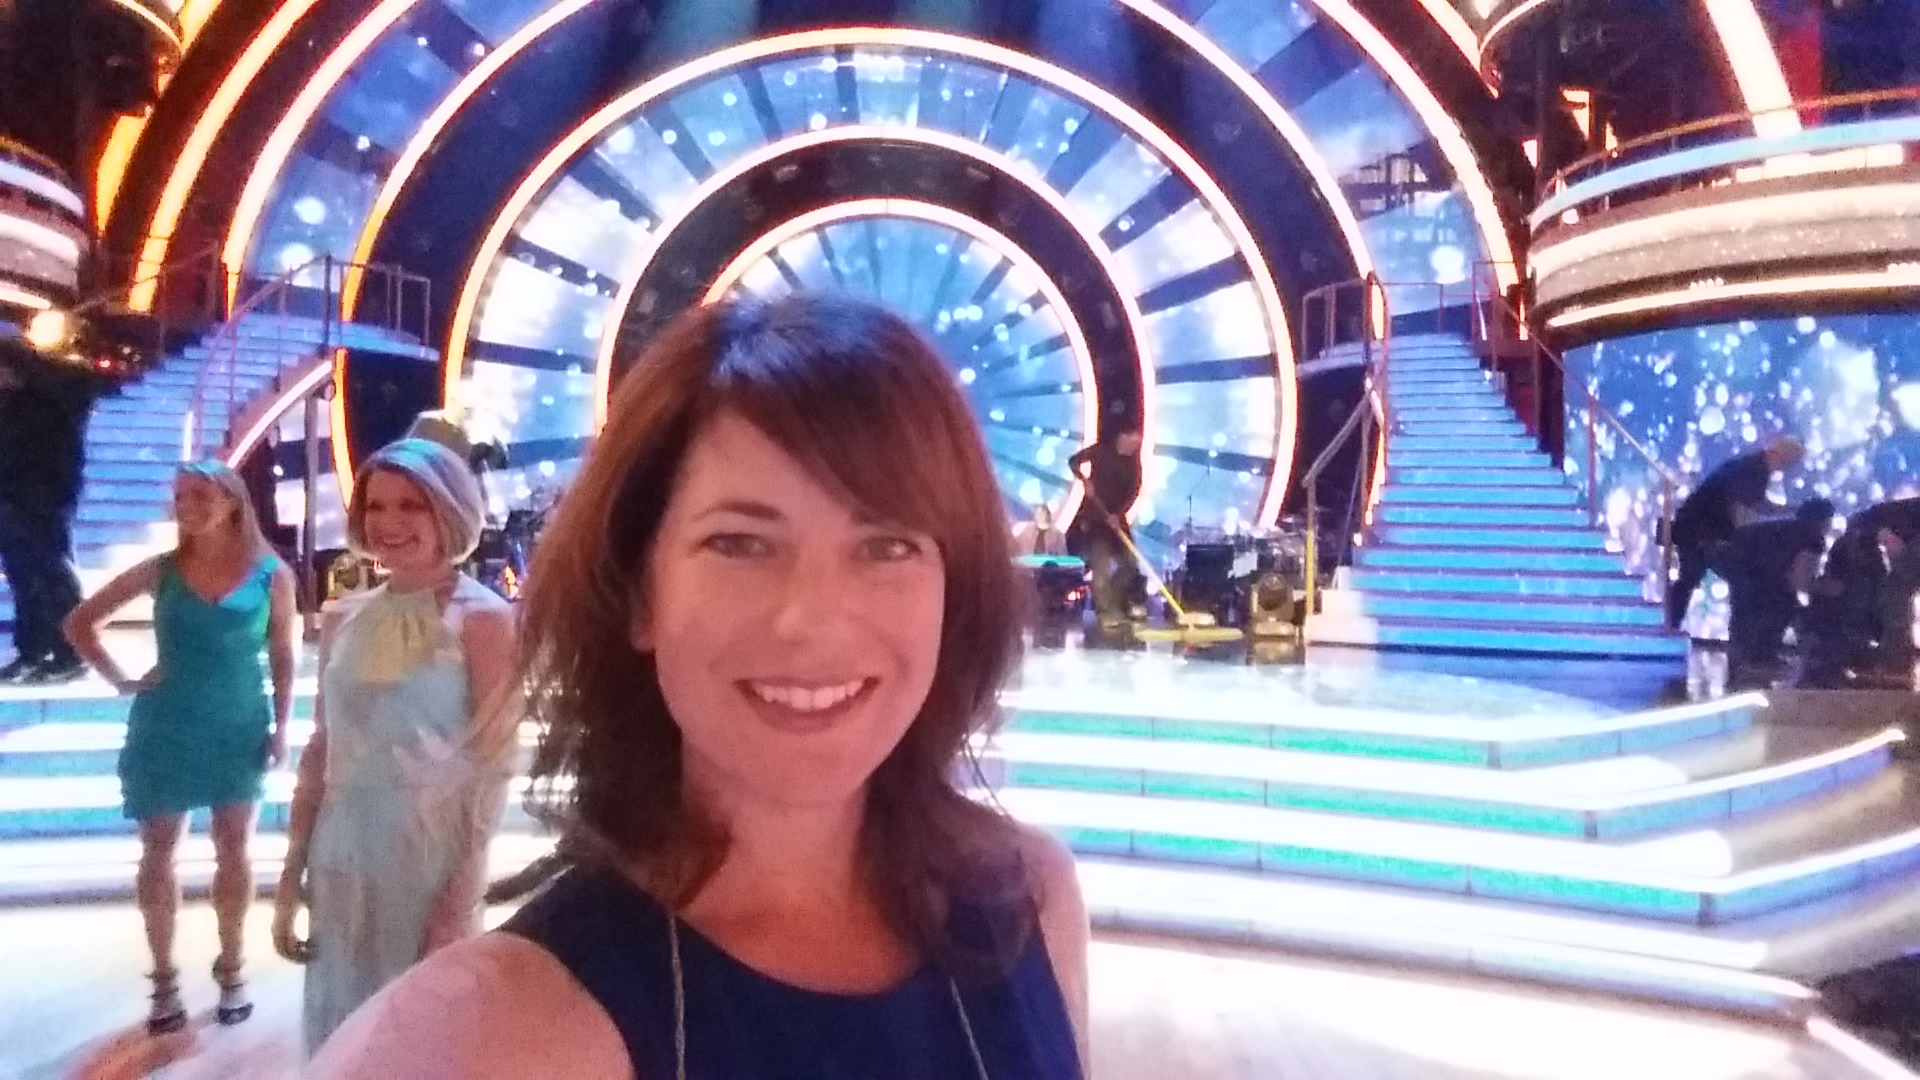 Dancing with the Stars audience dress code. What it's like in the Audience!